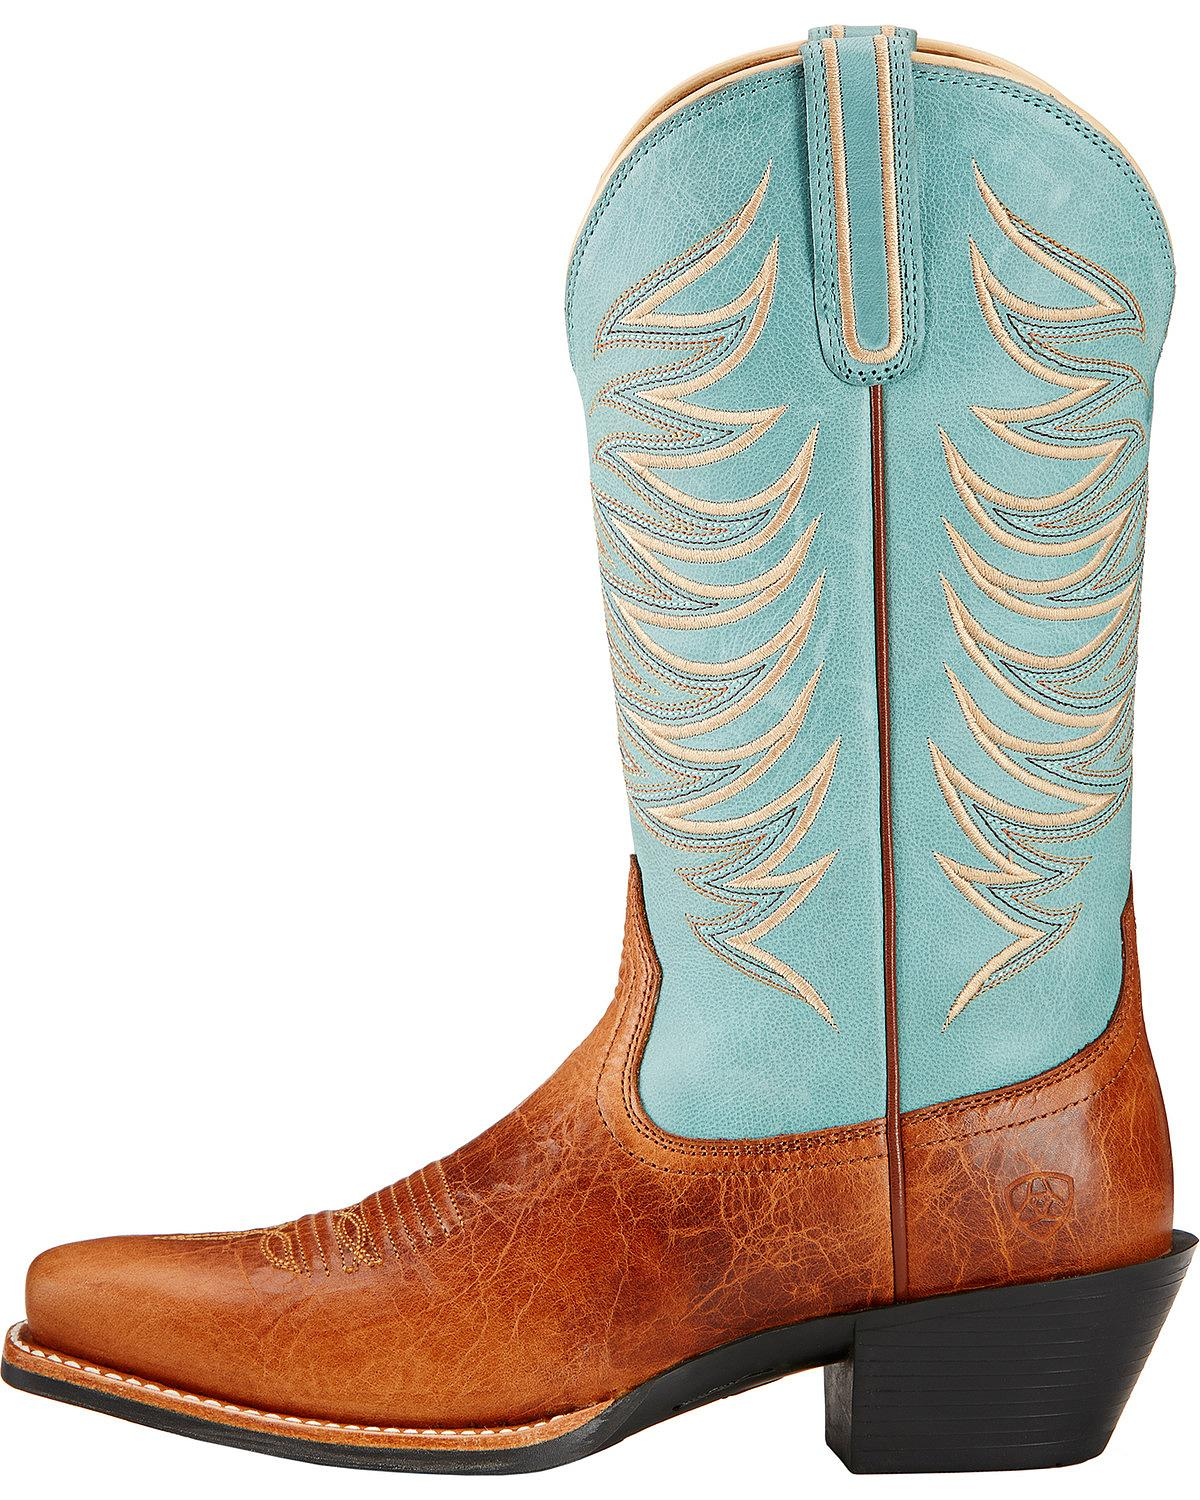 Perfect Ariat Womenu0026#39;s Ranch Ii Cowgirl Boot Square Toe - 10017423